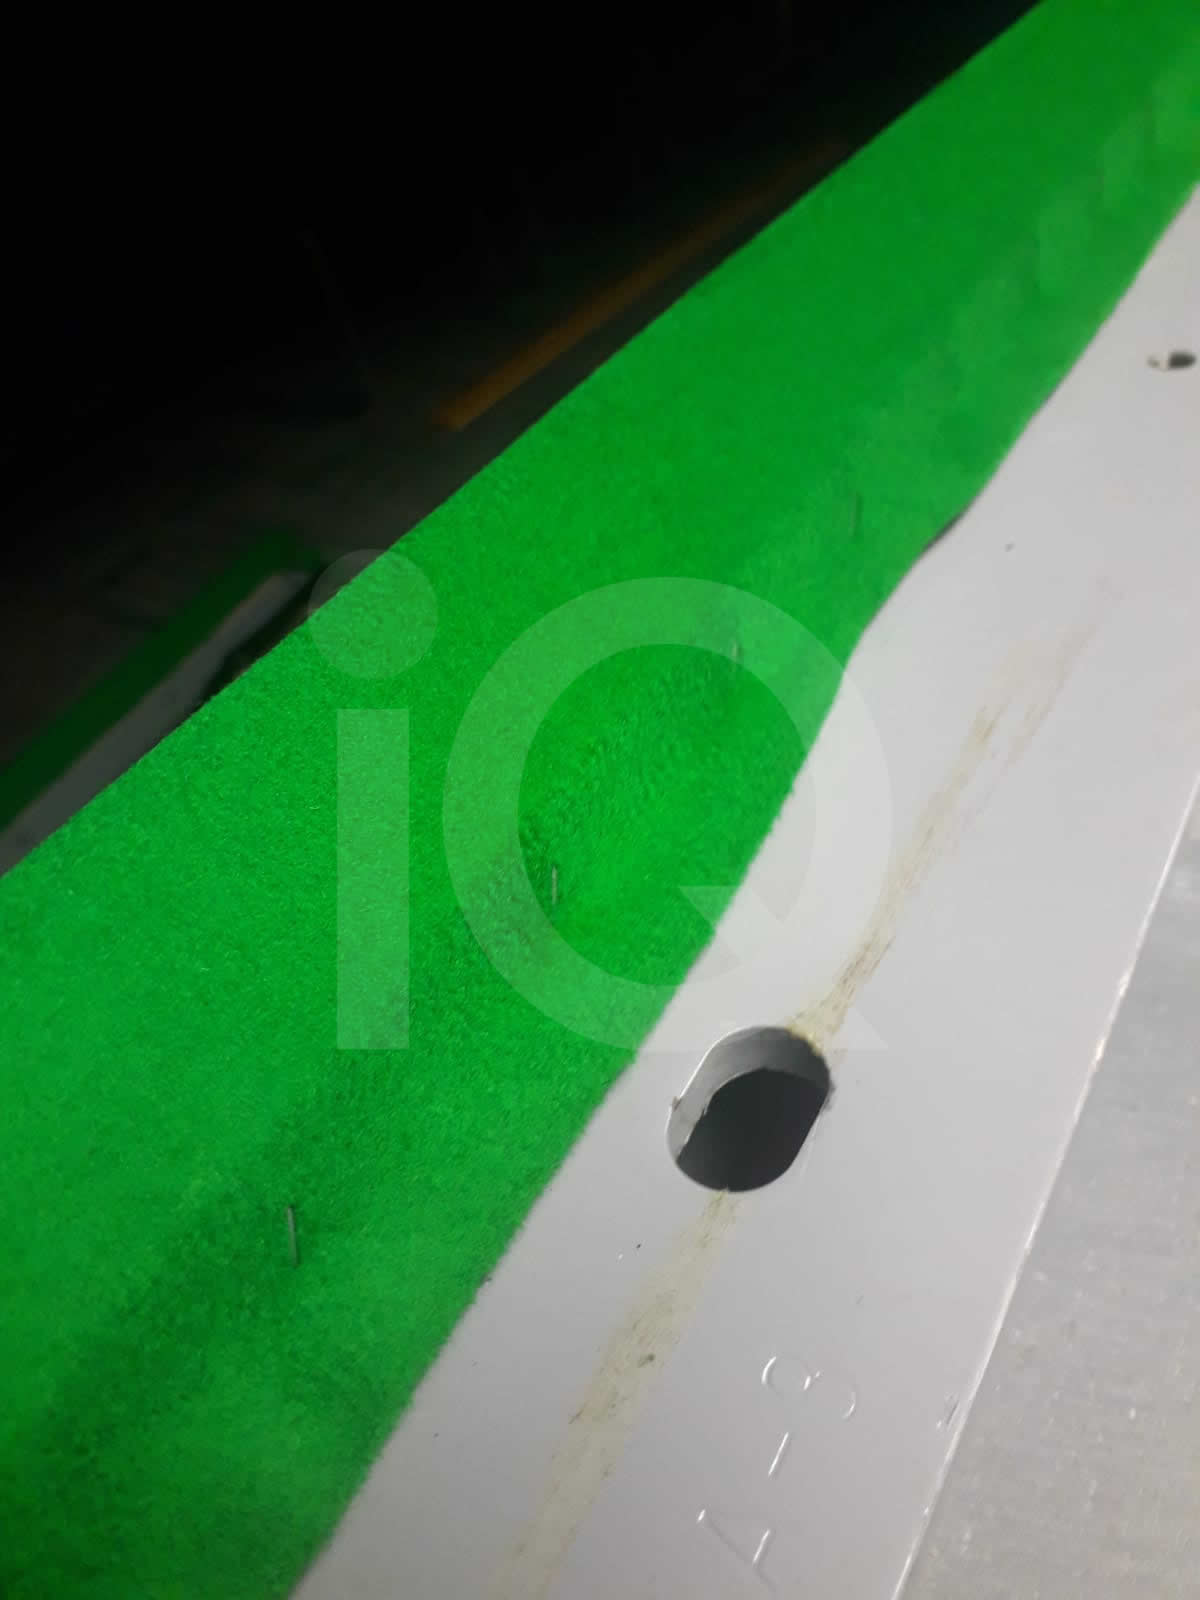 Snooker table cushion recover in green cloth